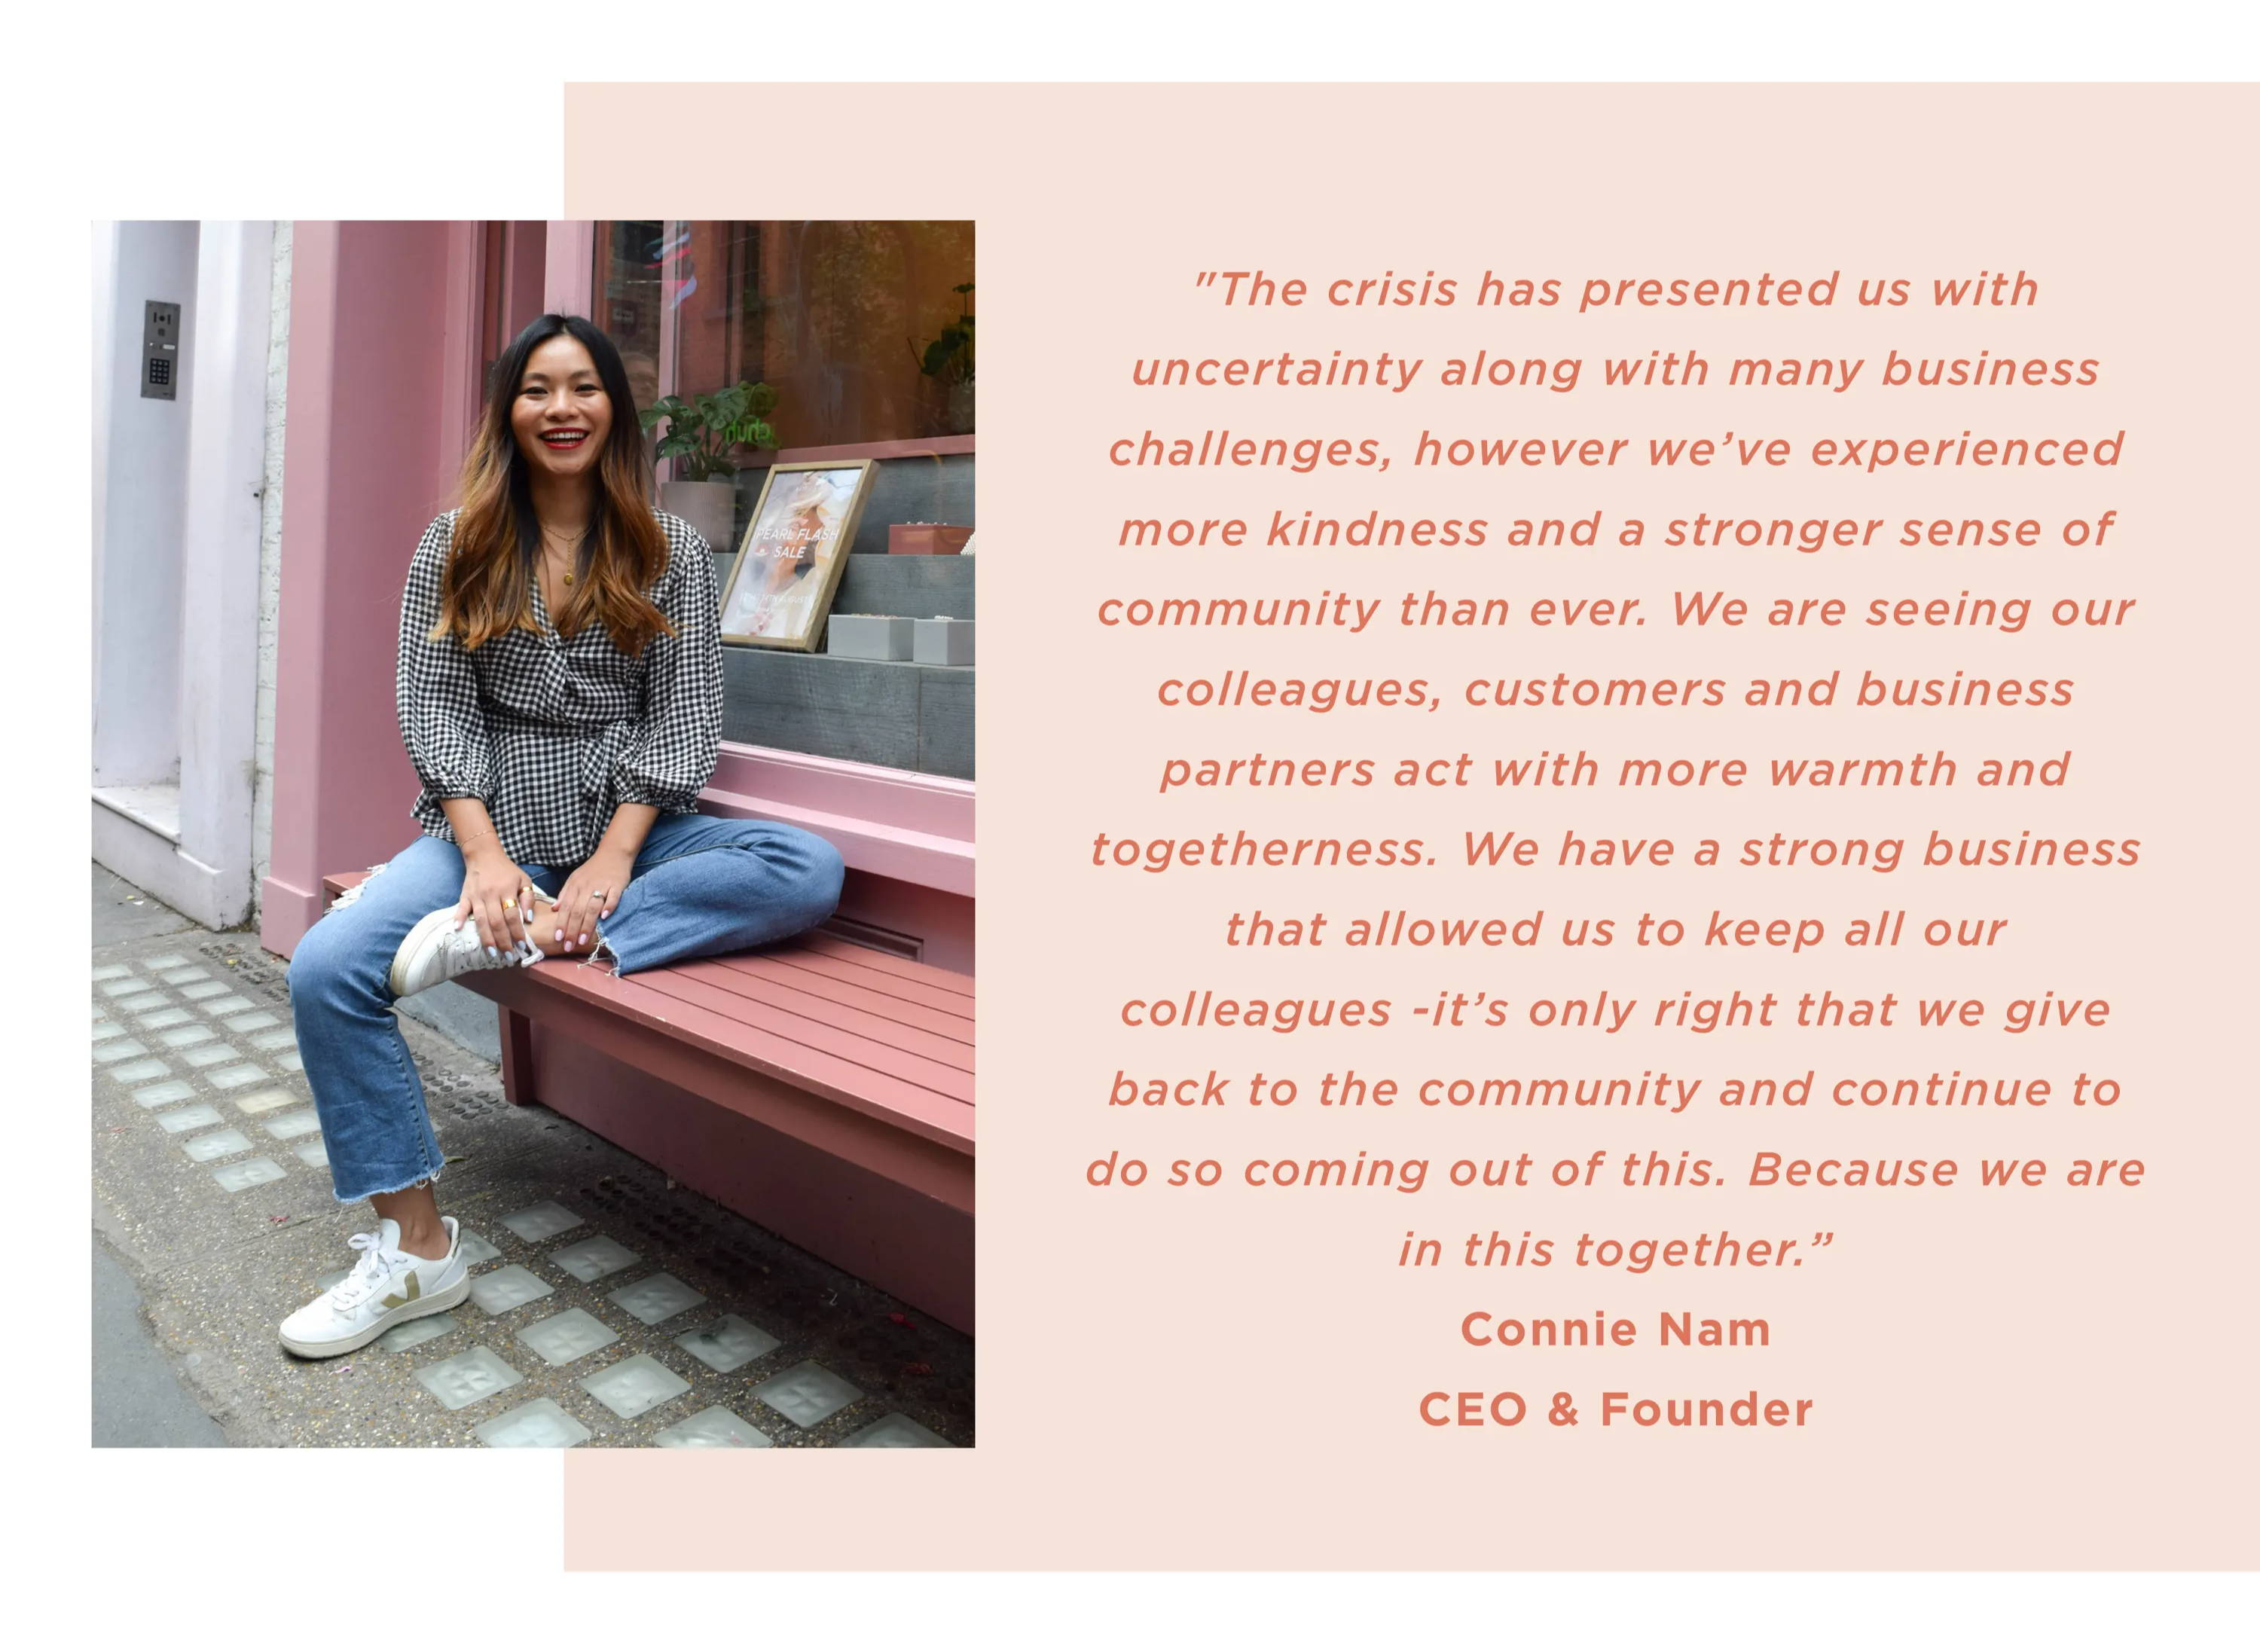 Quote from Connie Nam about the collaboration